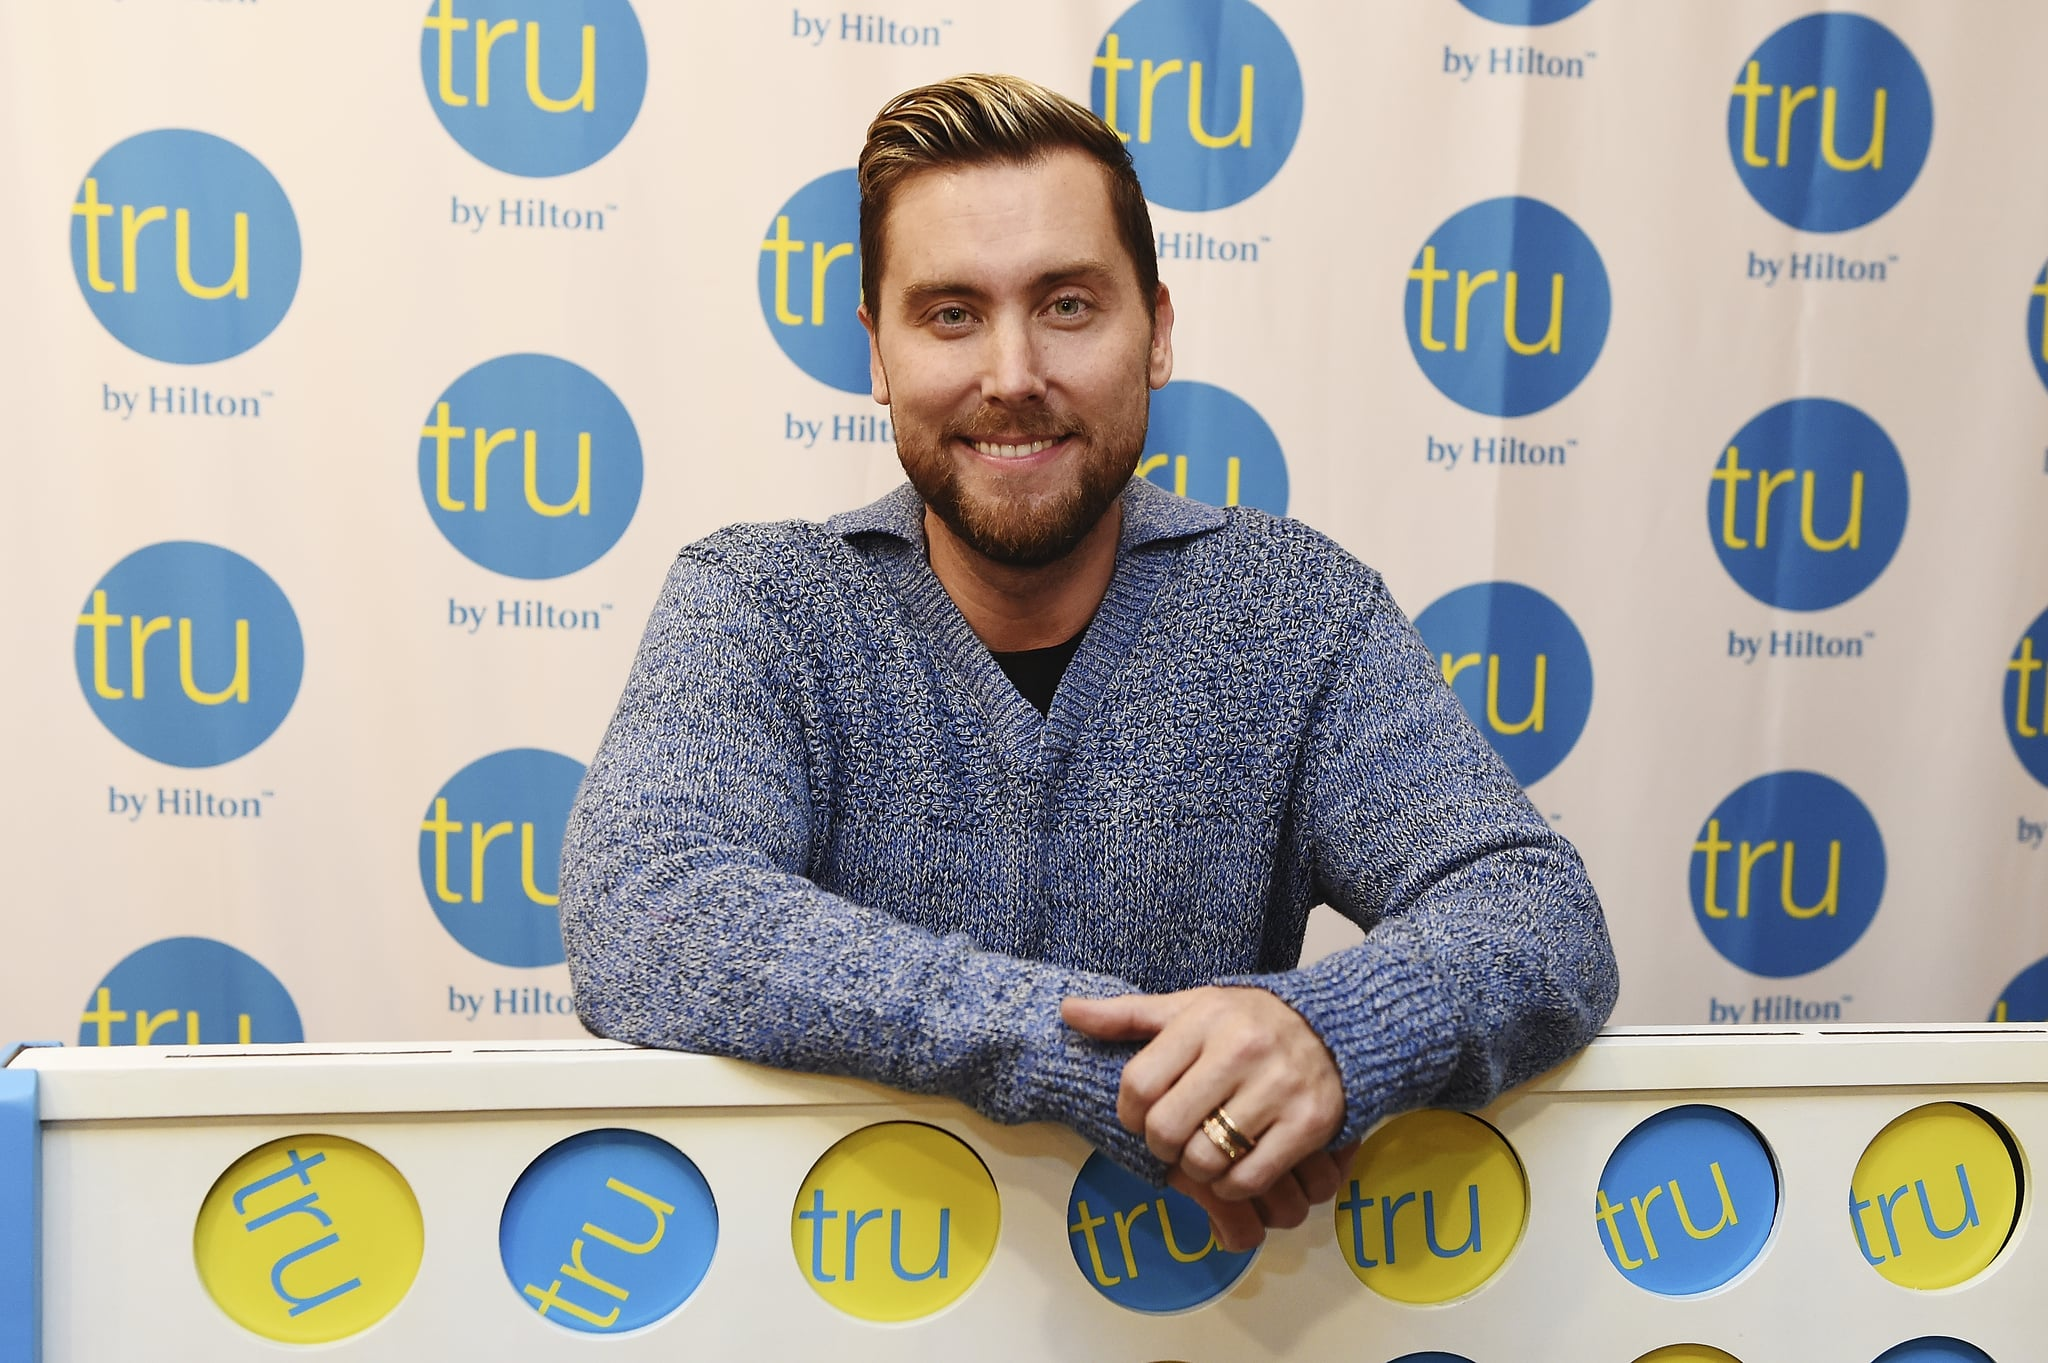 SALT LAKE CITY, UTAH - NOVEMBER 29: *NSYNC member Lance Bass hosts the Tru Connections event, celebrating Tru by Hilton's rapid growth to 50 open hotels with a giant CONNECT 4 tournament at Tru by Hilton Salt Lake City Airport on November 29, 2018 in Salt Lake City, Utah. (Photo by Fred Hayes/Getty Images for Tru by Hilton)